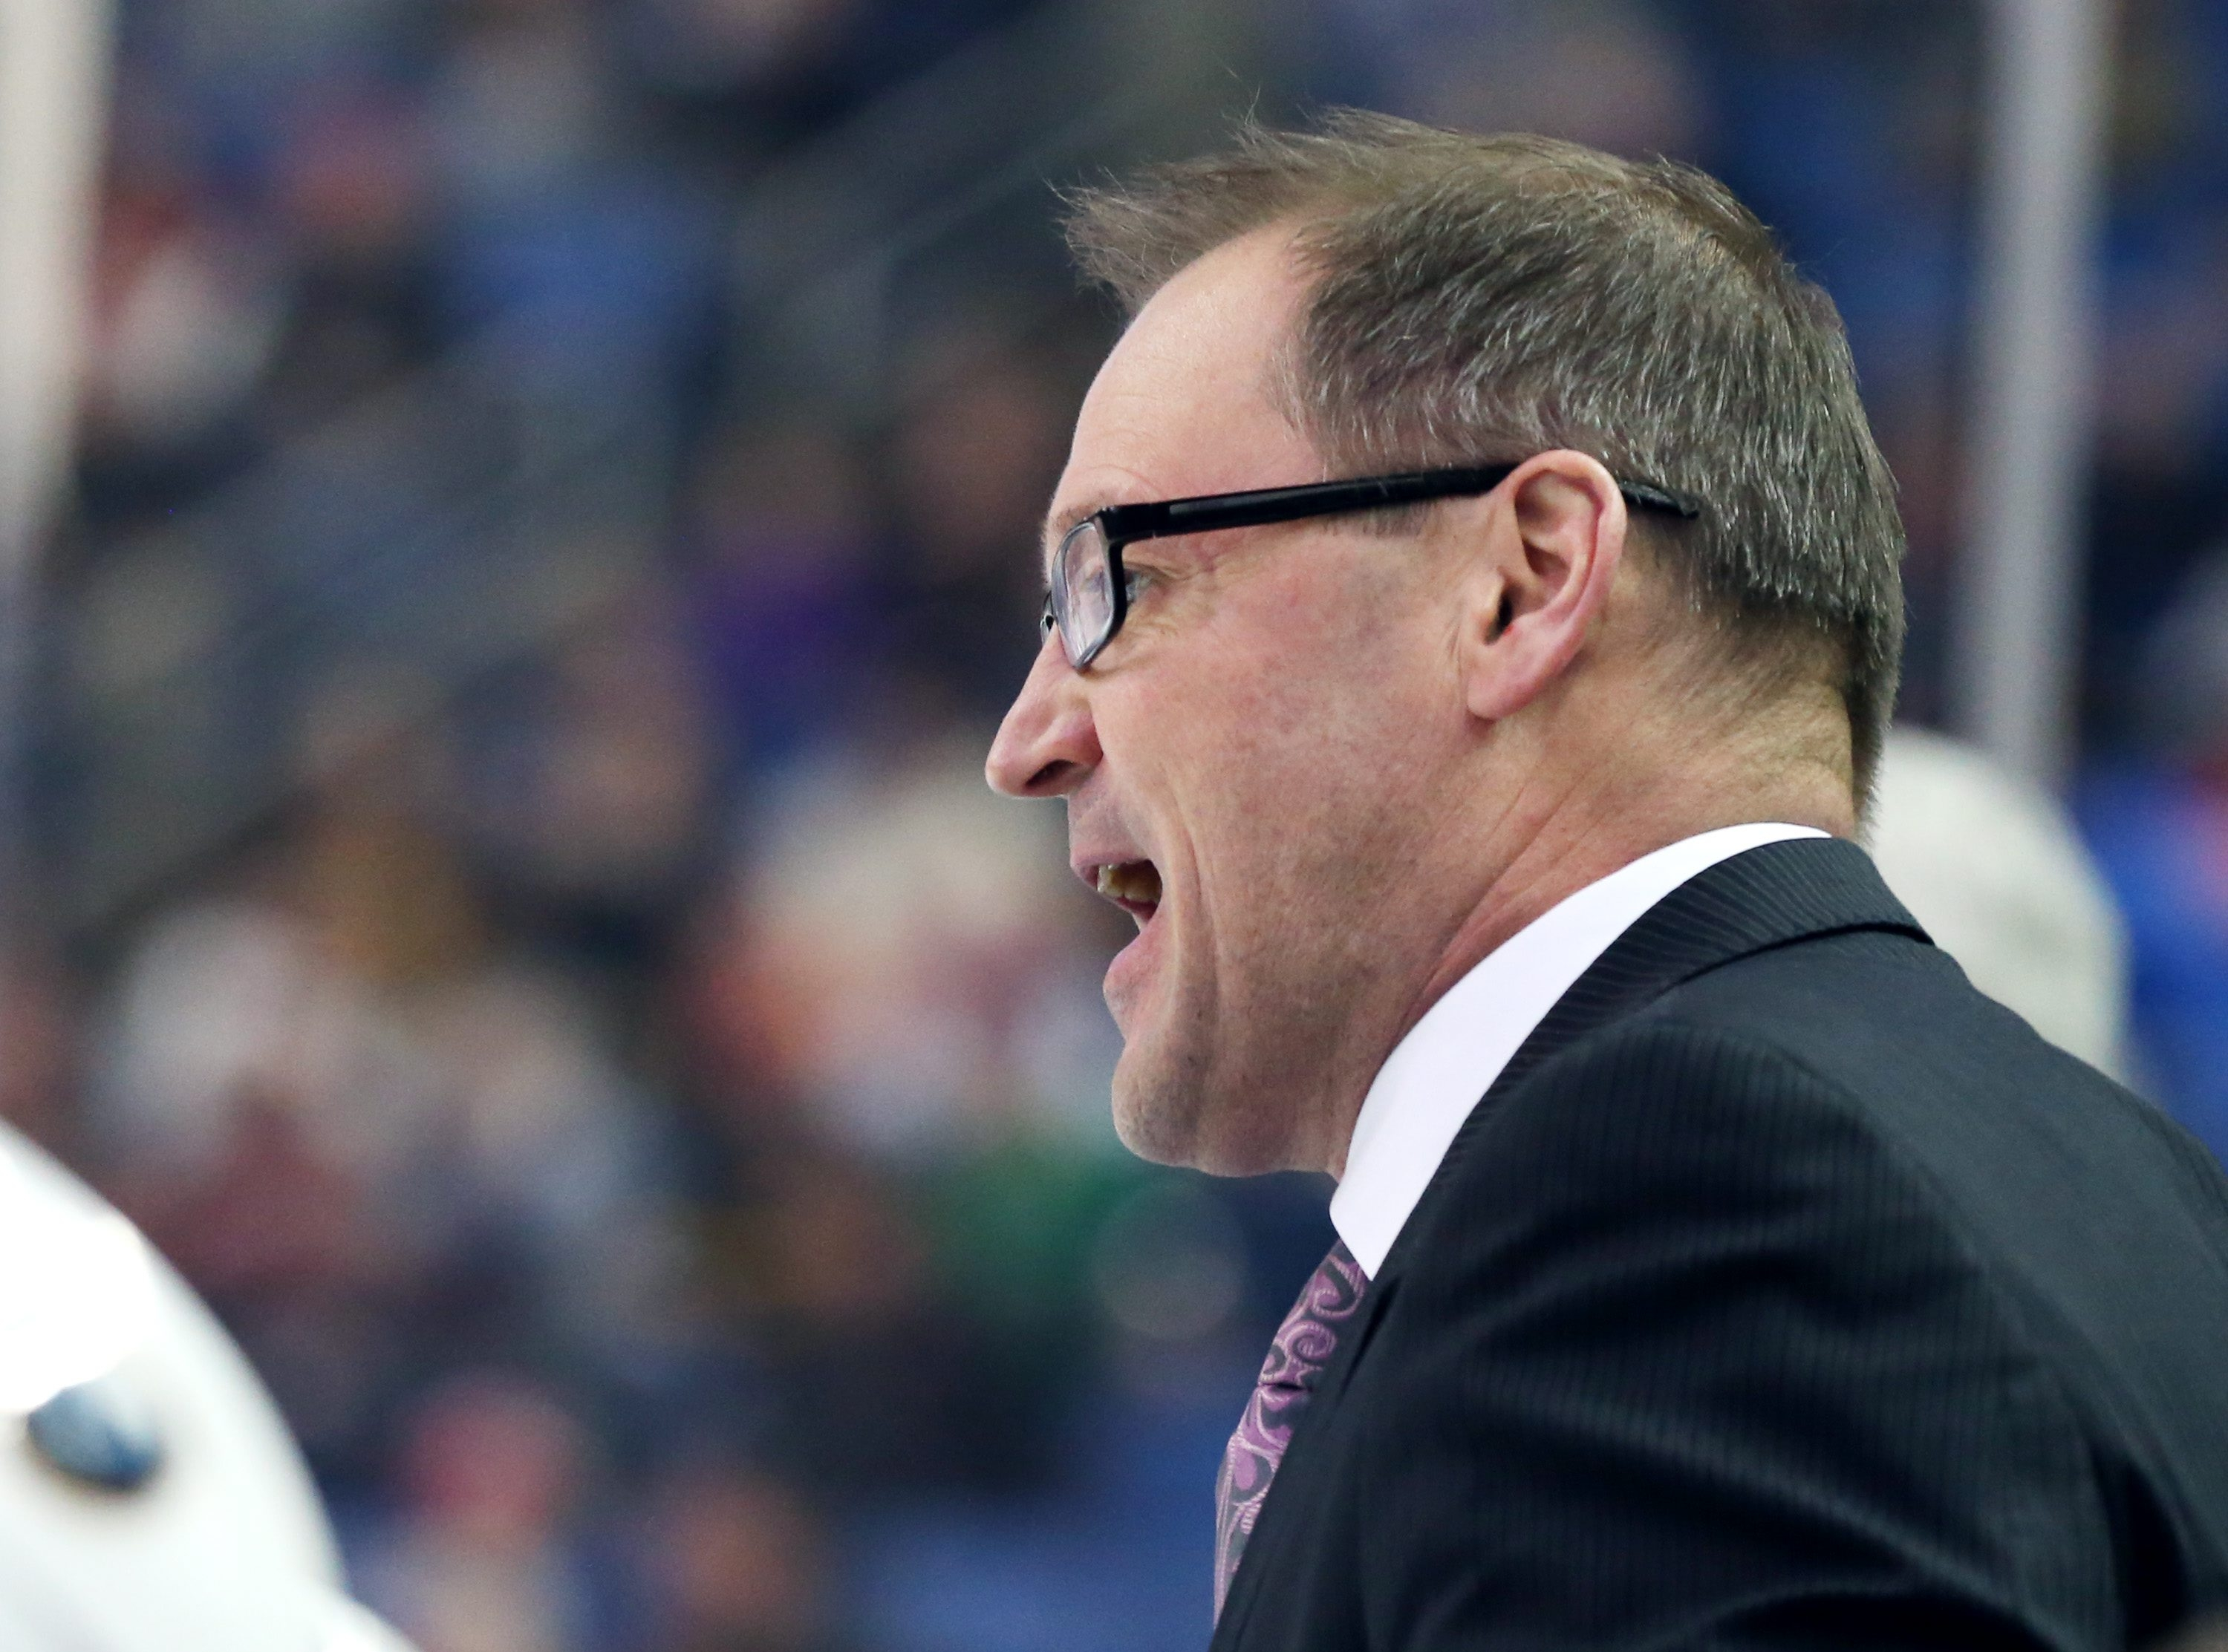 Buffalo Sabres head coach Dan Bylsma gels at his players  in the first period at First Niagara Center in Buffalo, NY on Friday, Jan. 22, 2016.  (James P. McCoy/ Buffalo News)